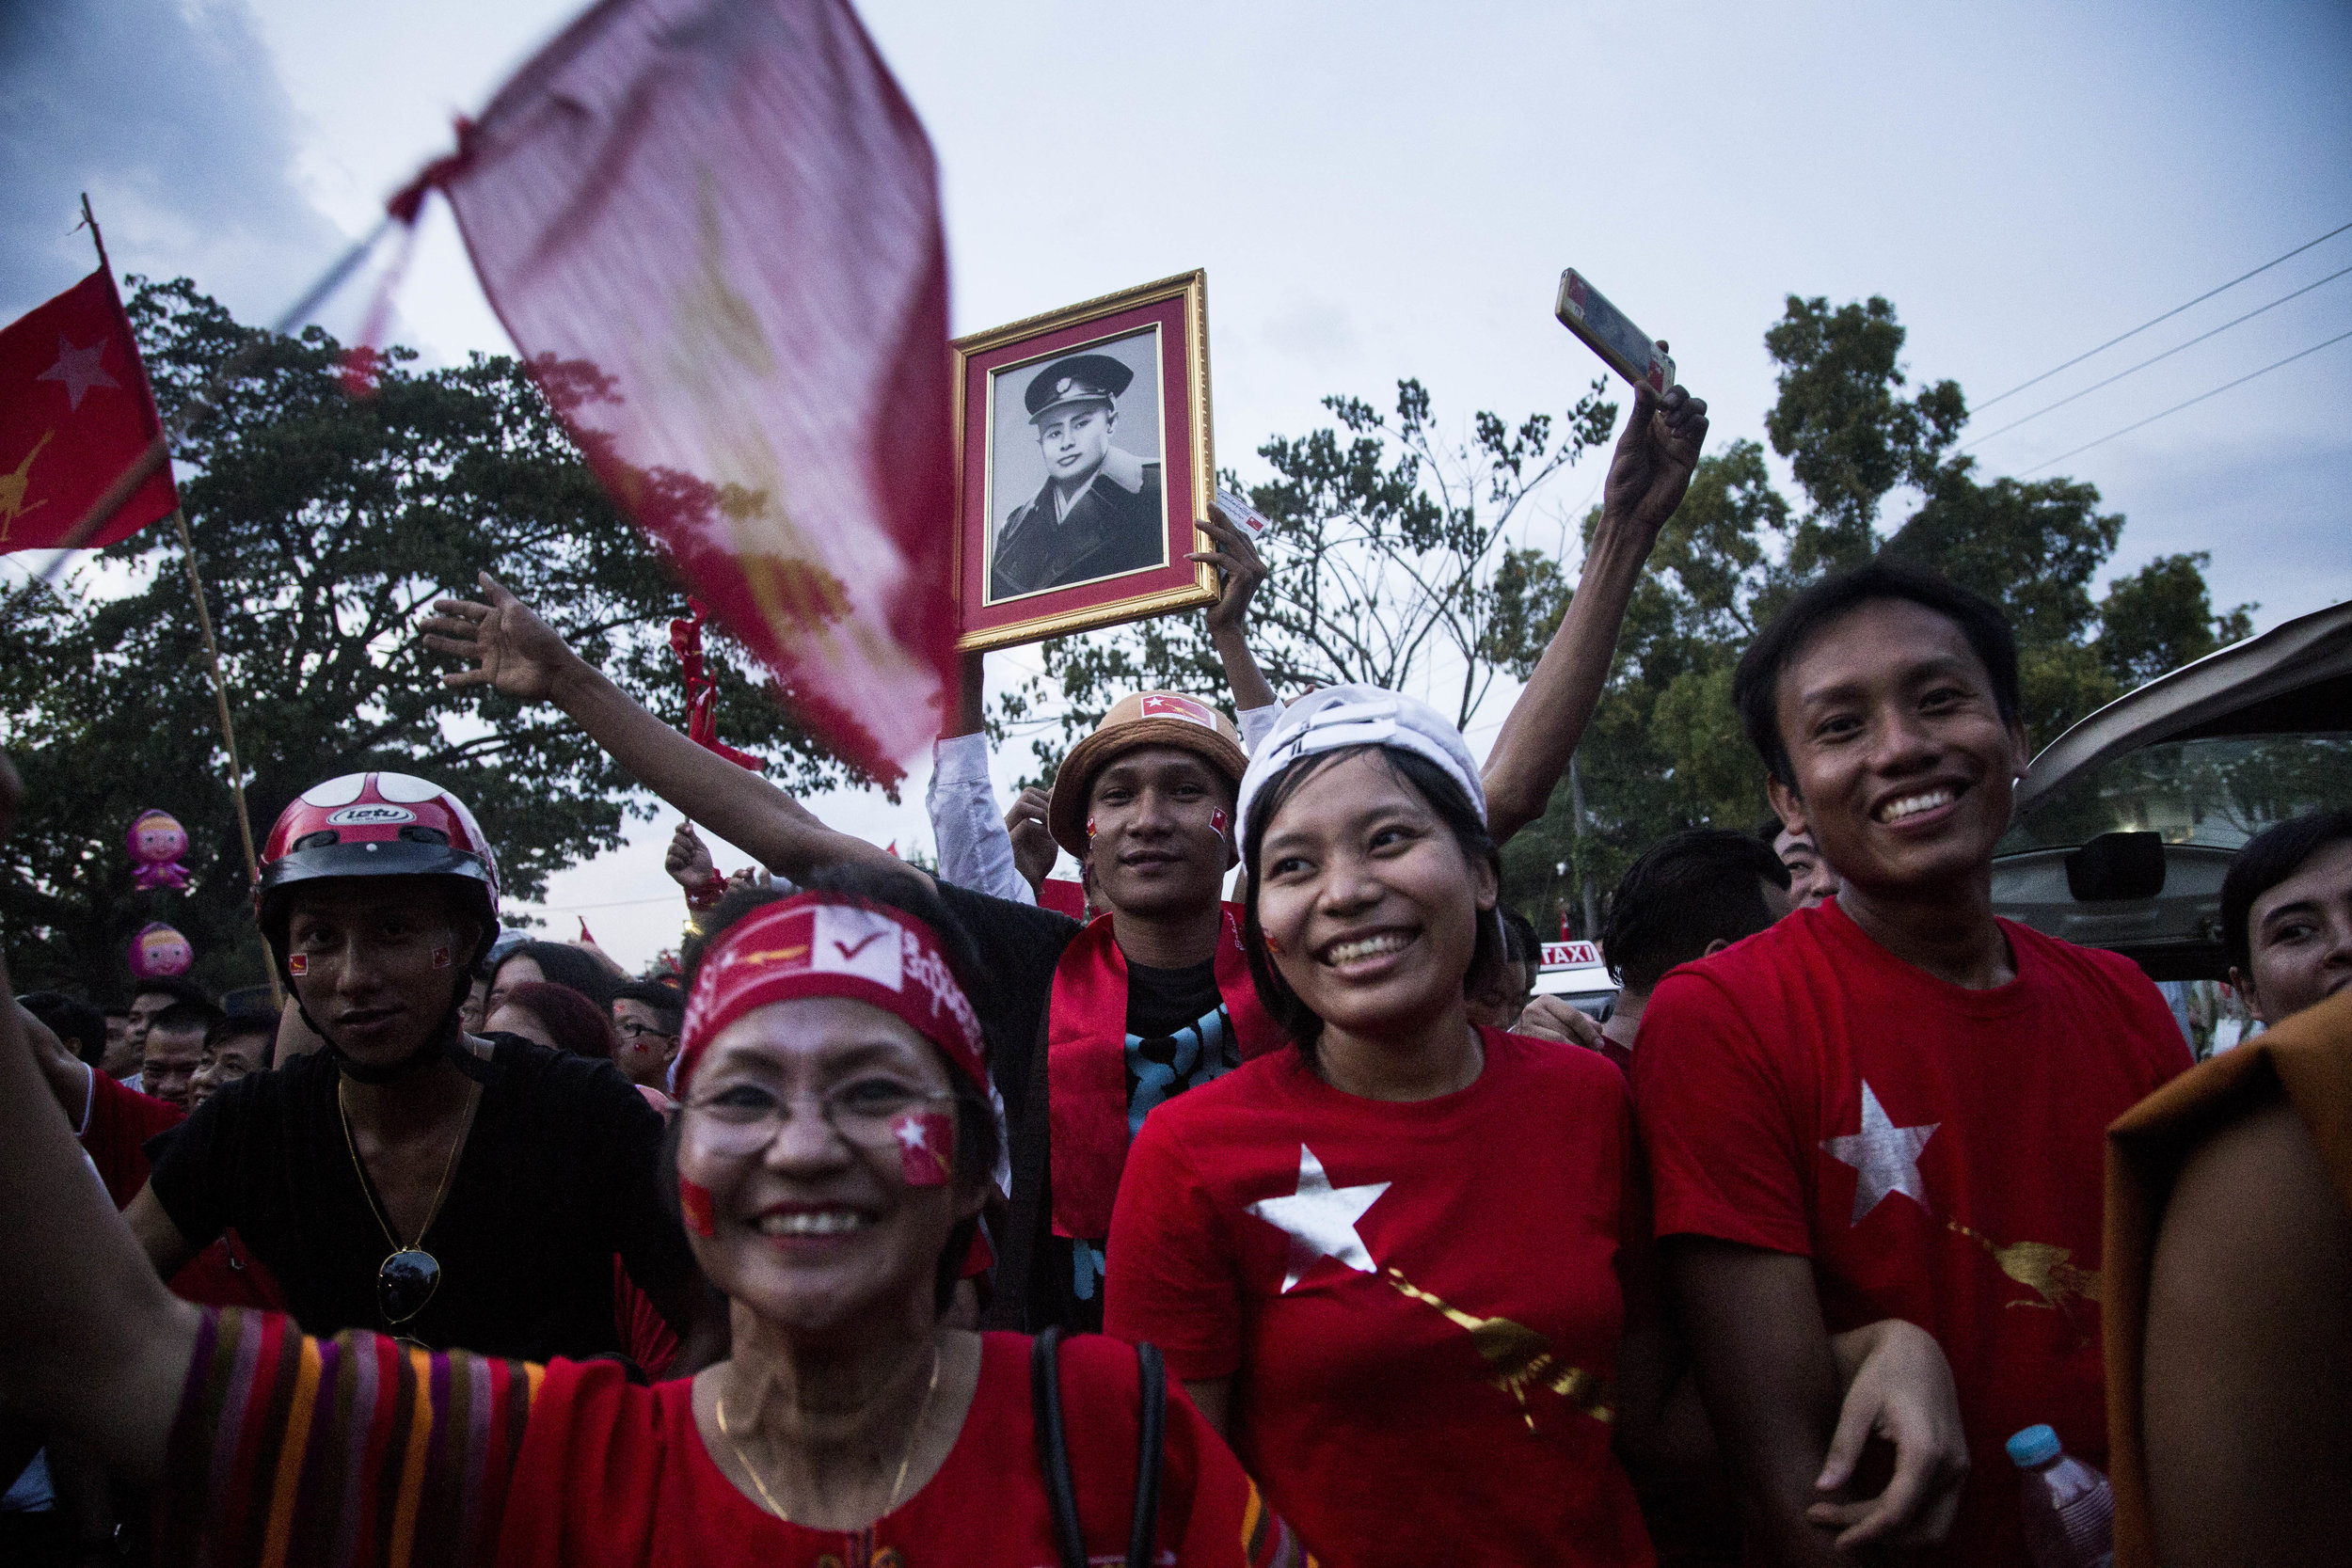 Tens of thousands of NLD supporters showed up at Daw Aung San Suu Kyi's rally at Thuwanna Pagoda on November 1, 2015. Photo by Ann Wang